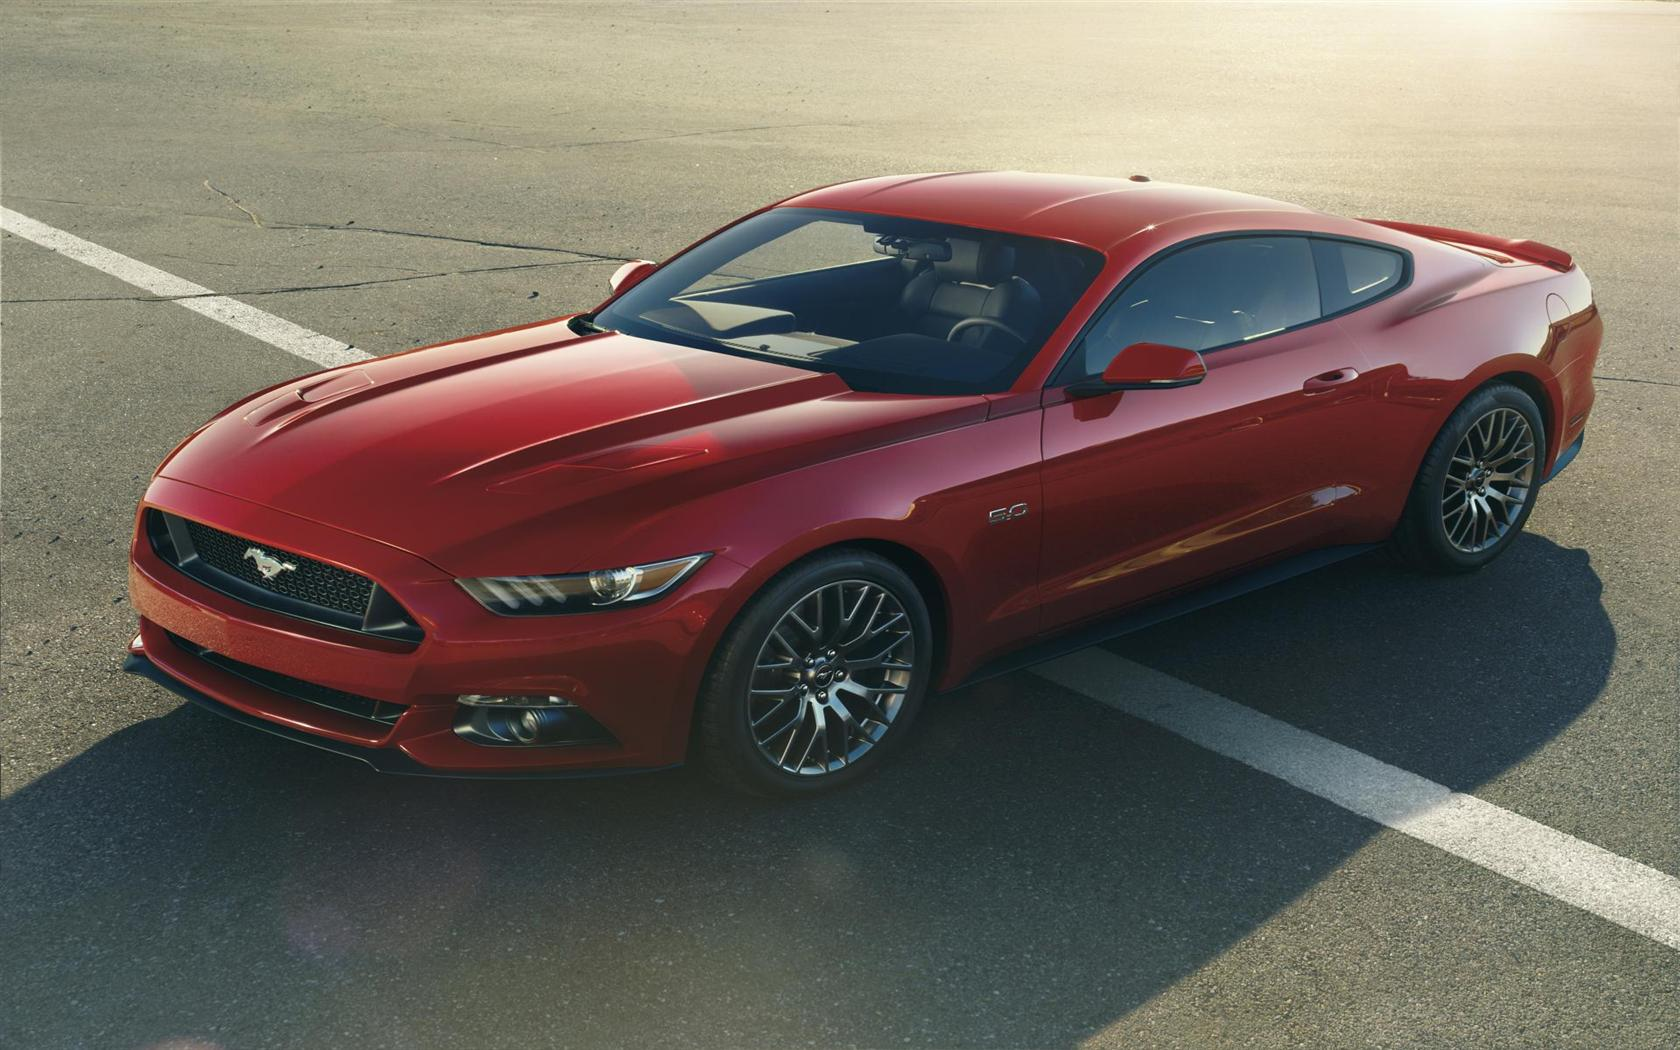 Mustang Concept >> 2015 Ford Mustang GT Image. Photo 52 of 69